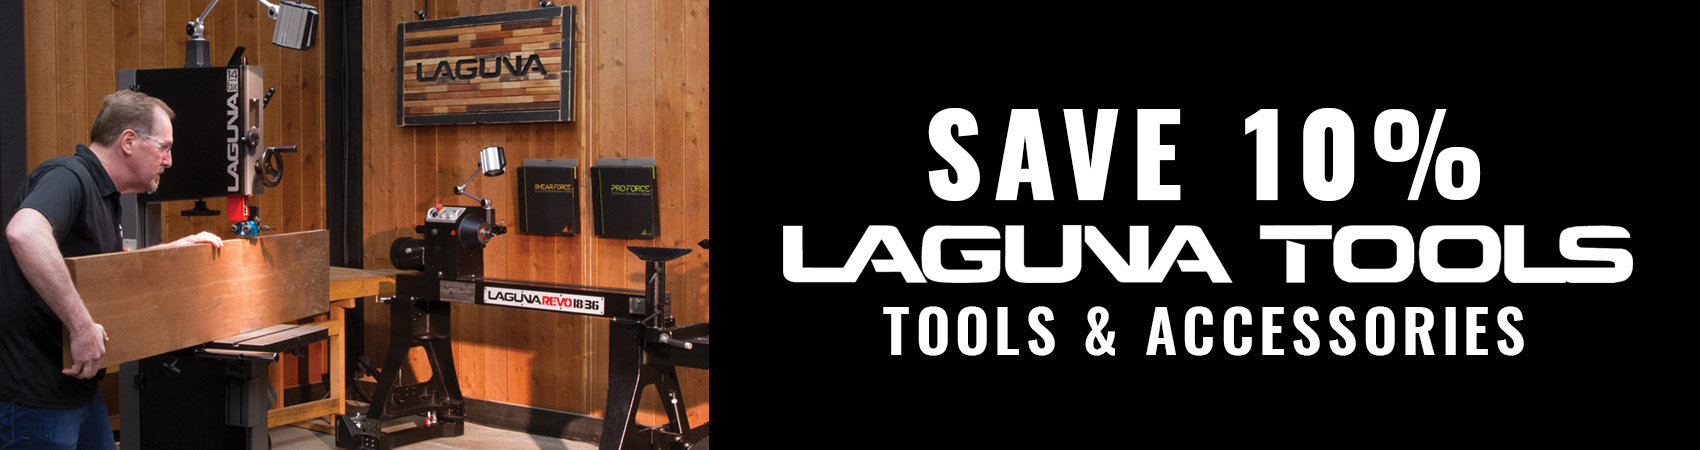 Save 10% On Laguna Tools